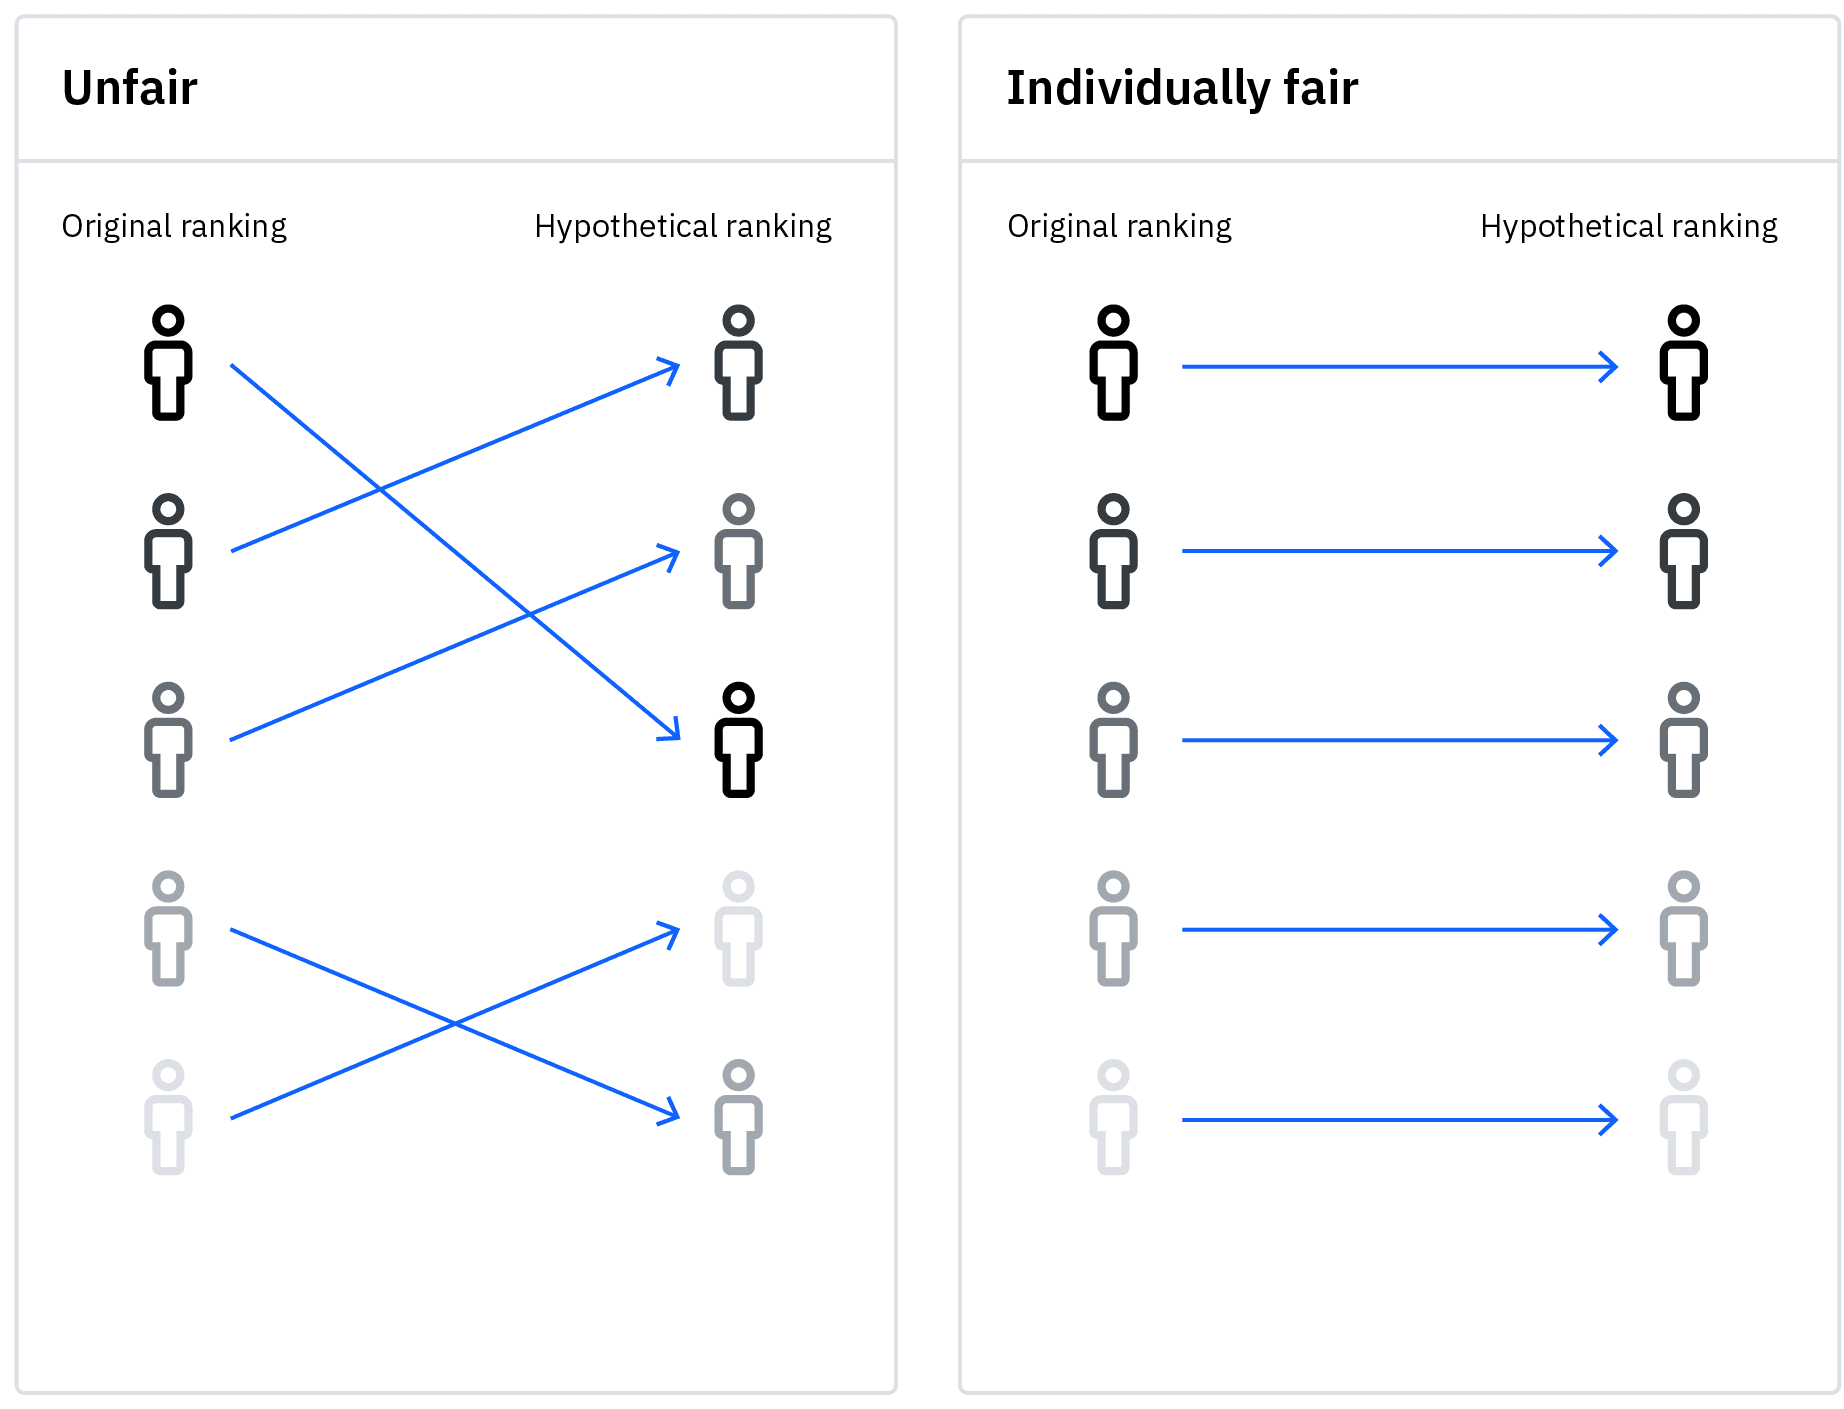 A graphic showing individual fairness in ranking